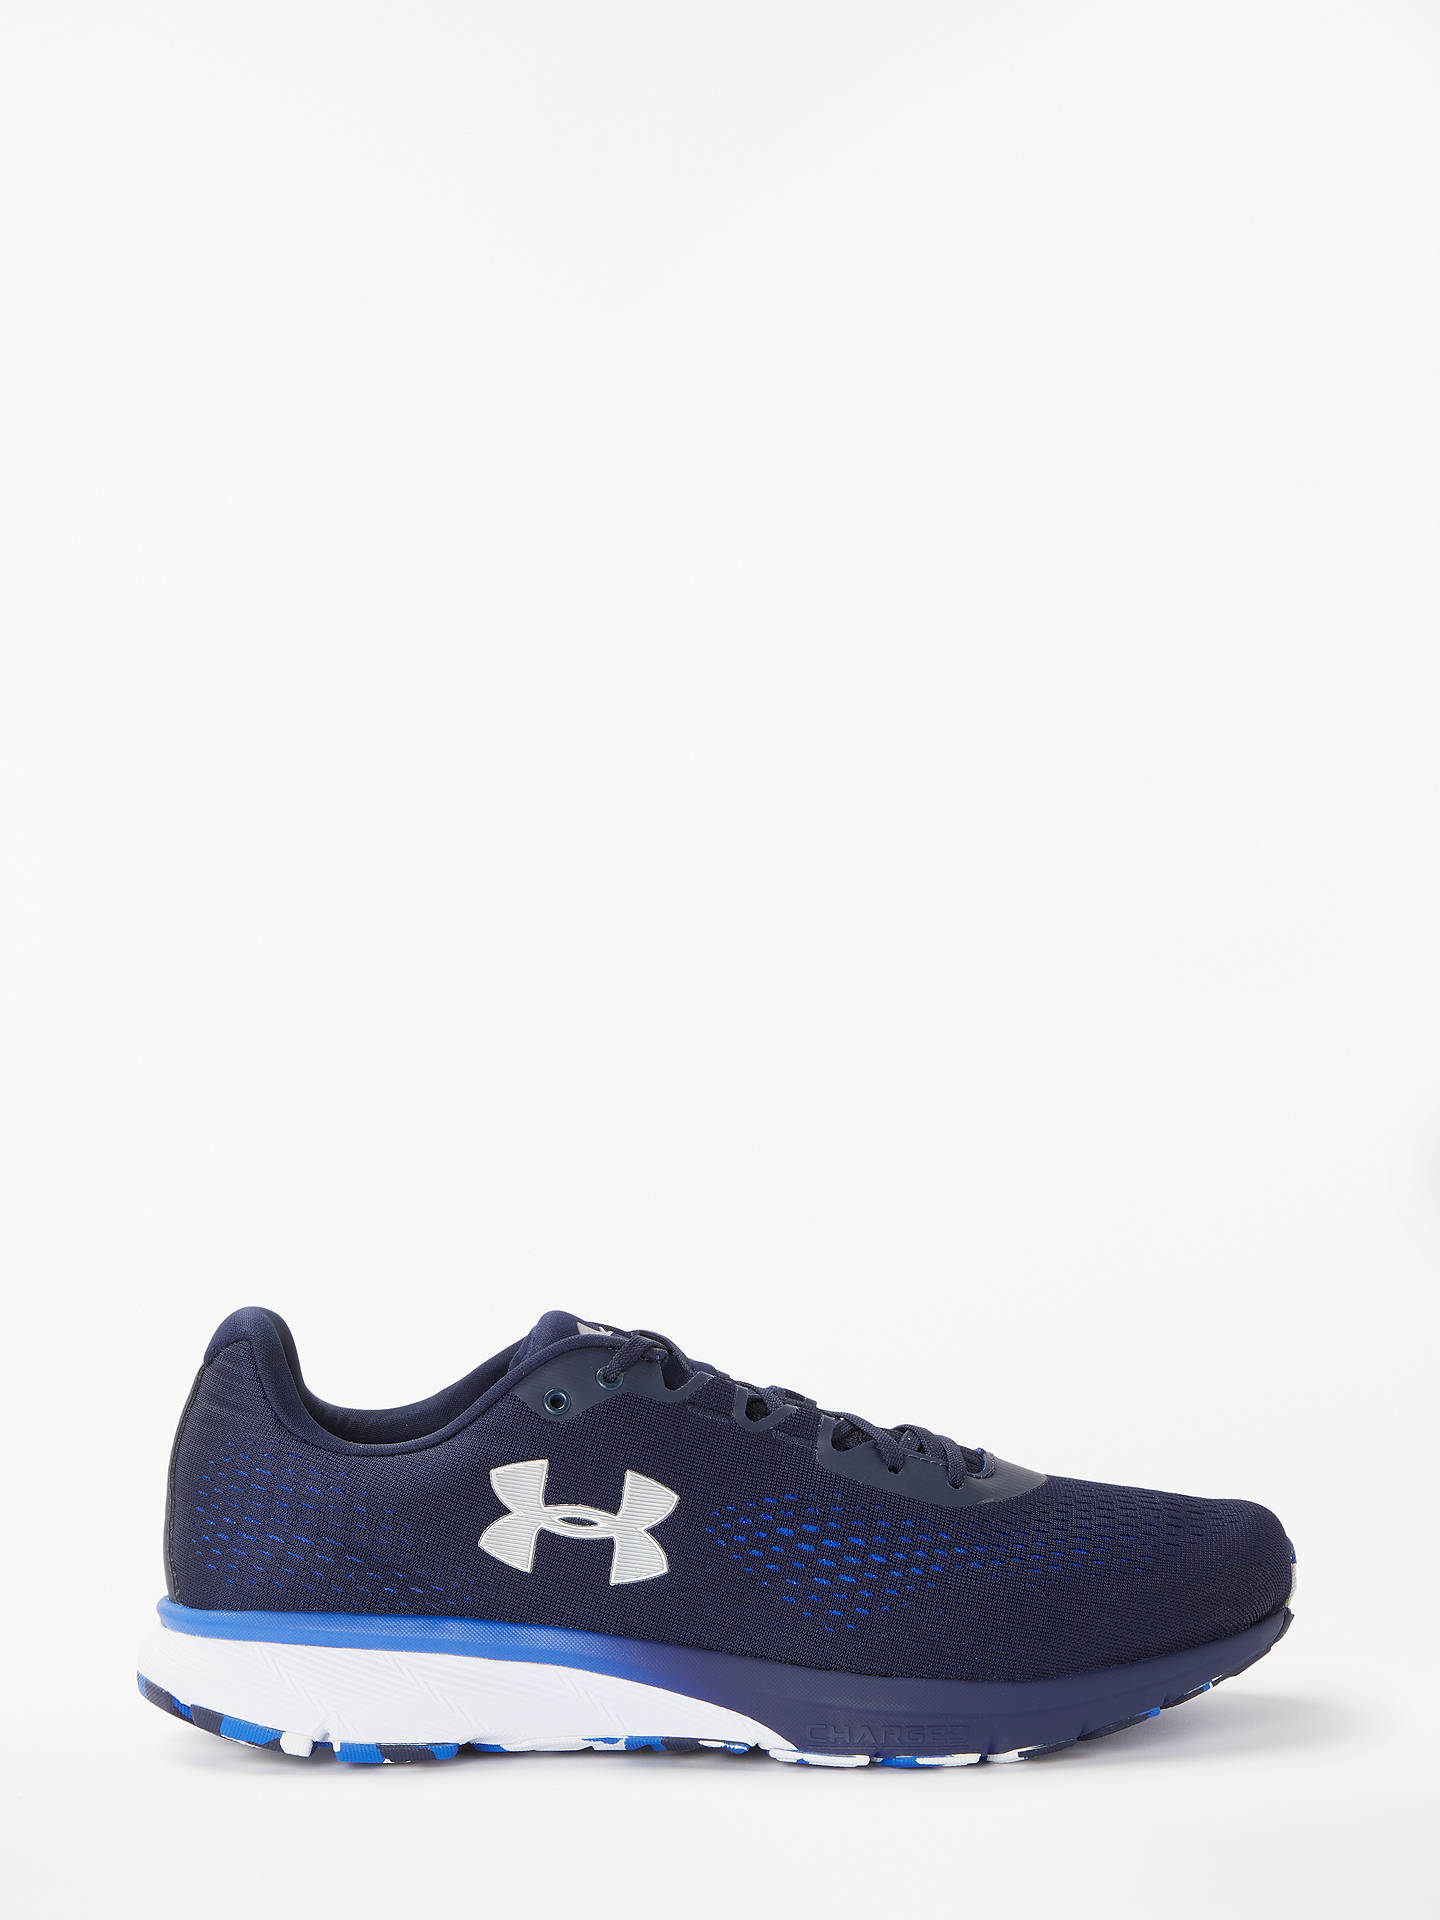 edbca7be4664 BuyUnder Armour Charged Spark Men s Running Shoes